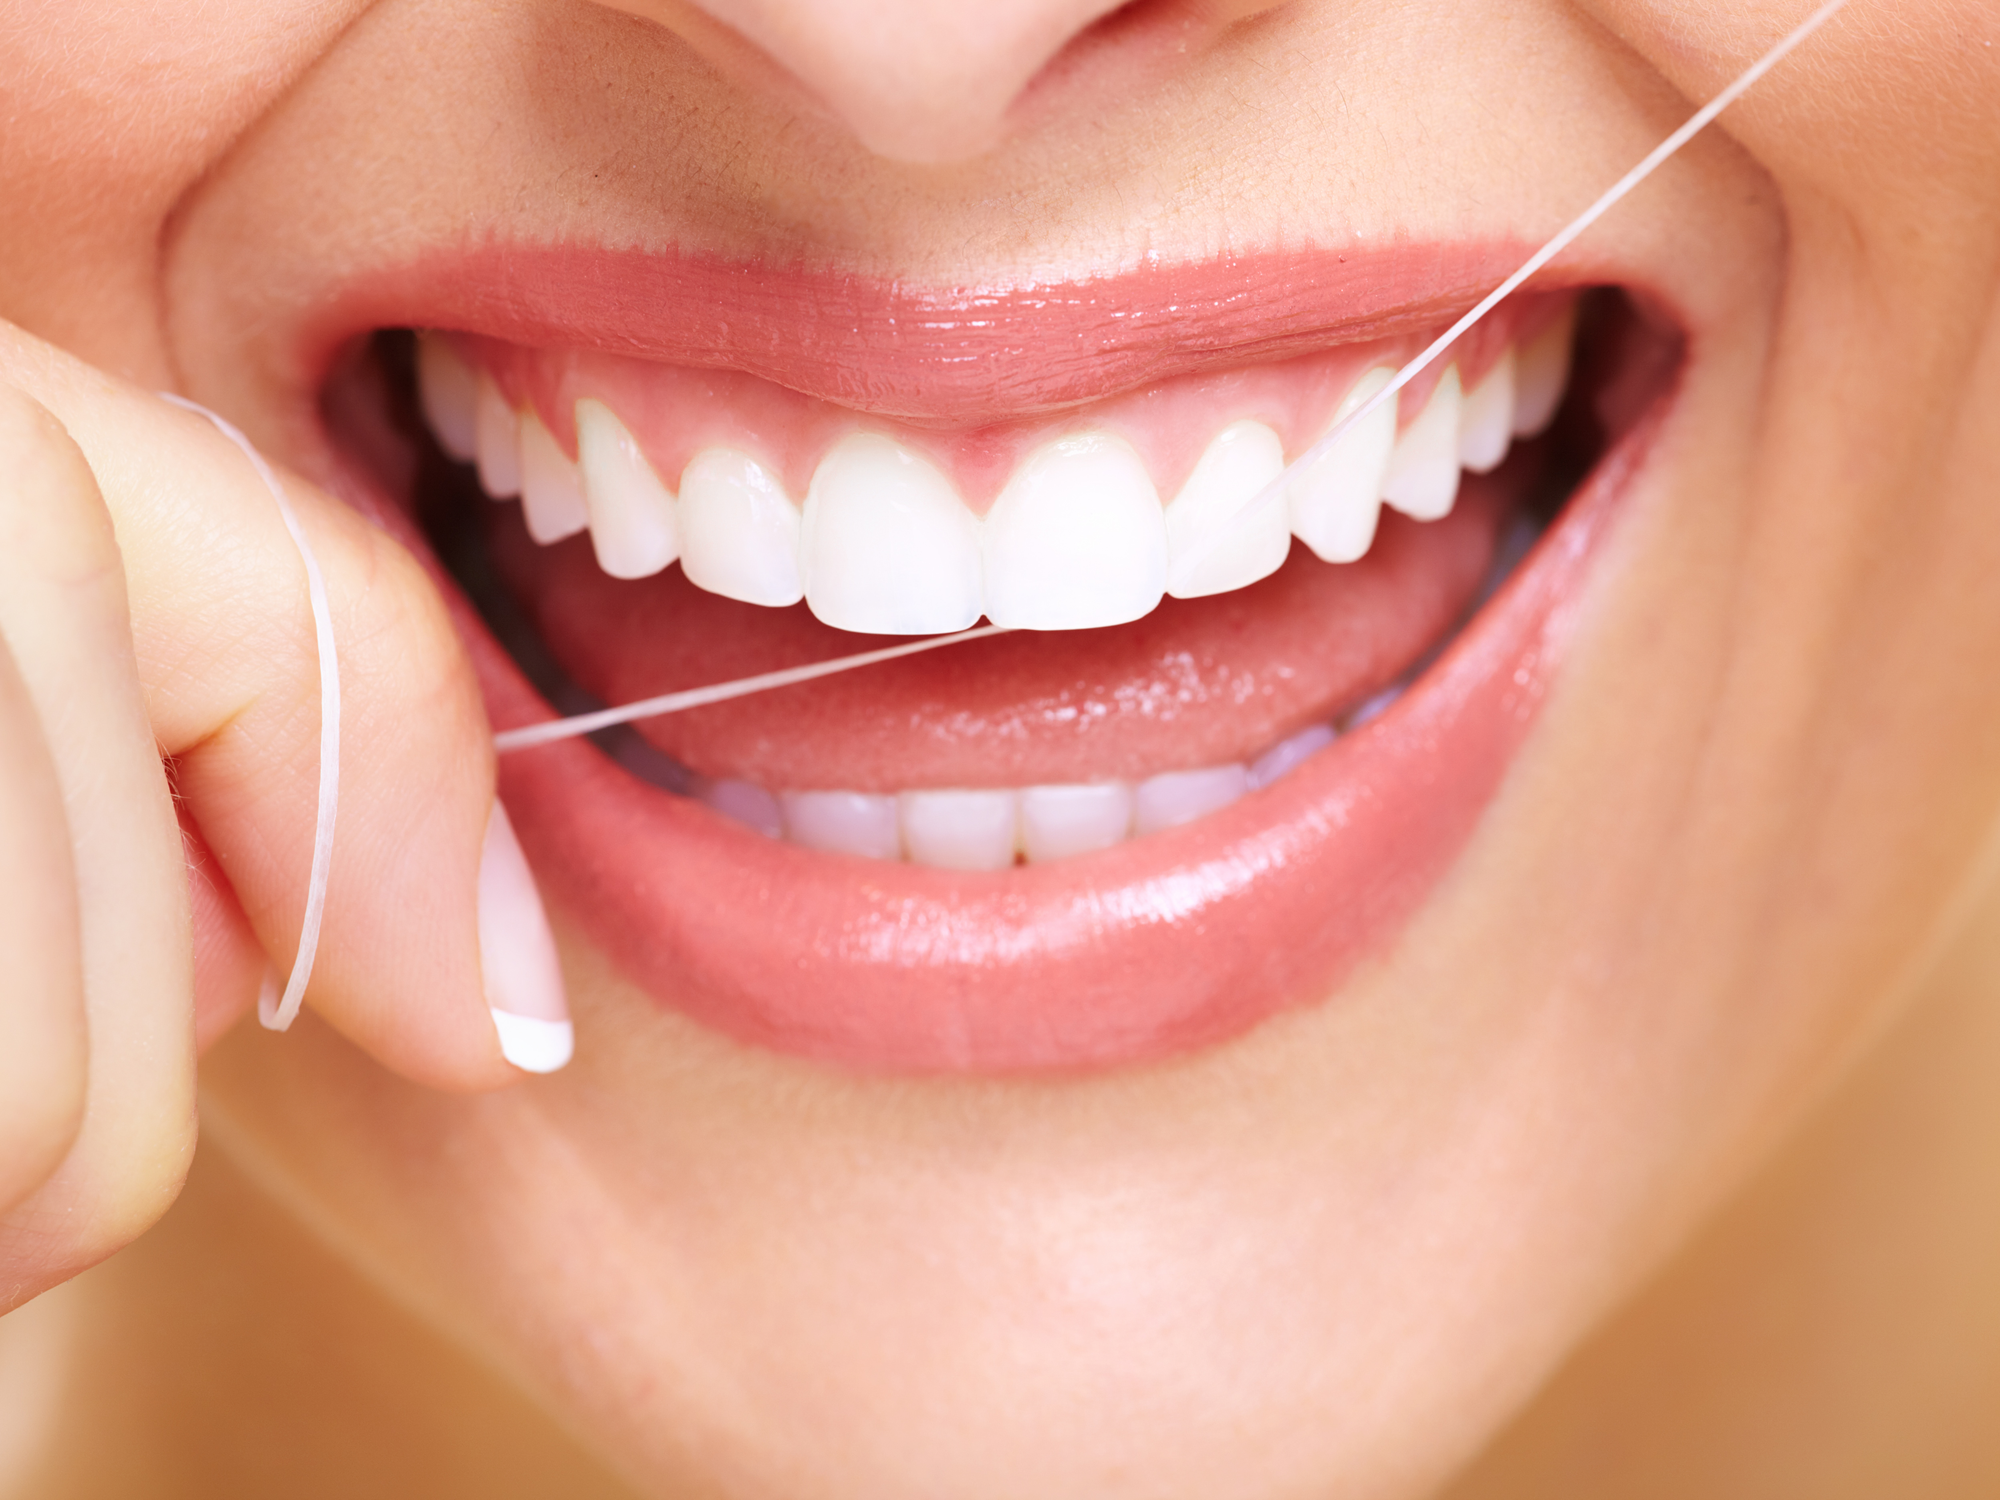 Dental Floss Recommendations and Flossing Techniques